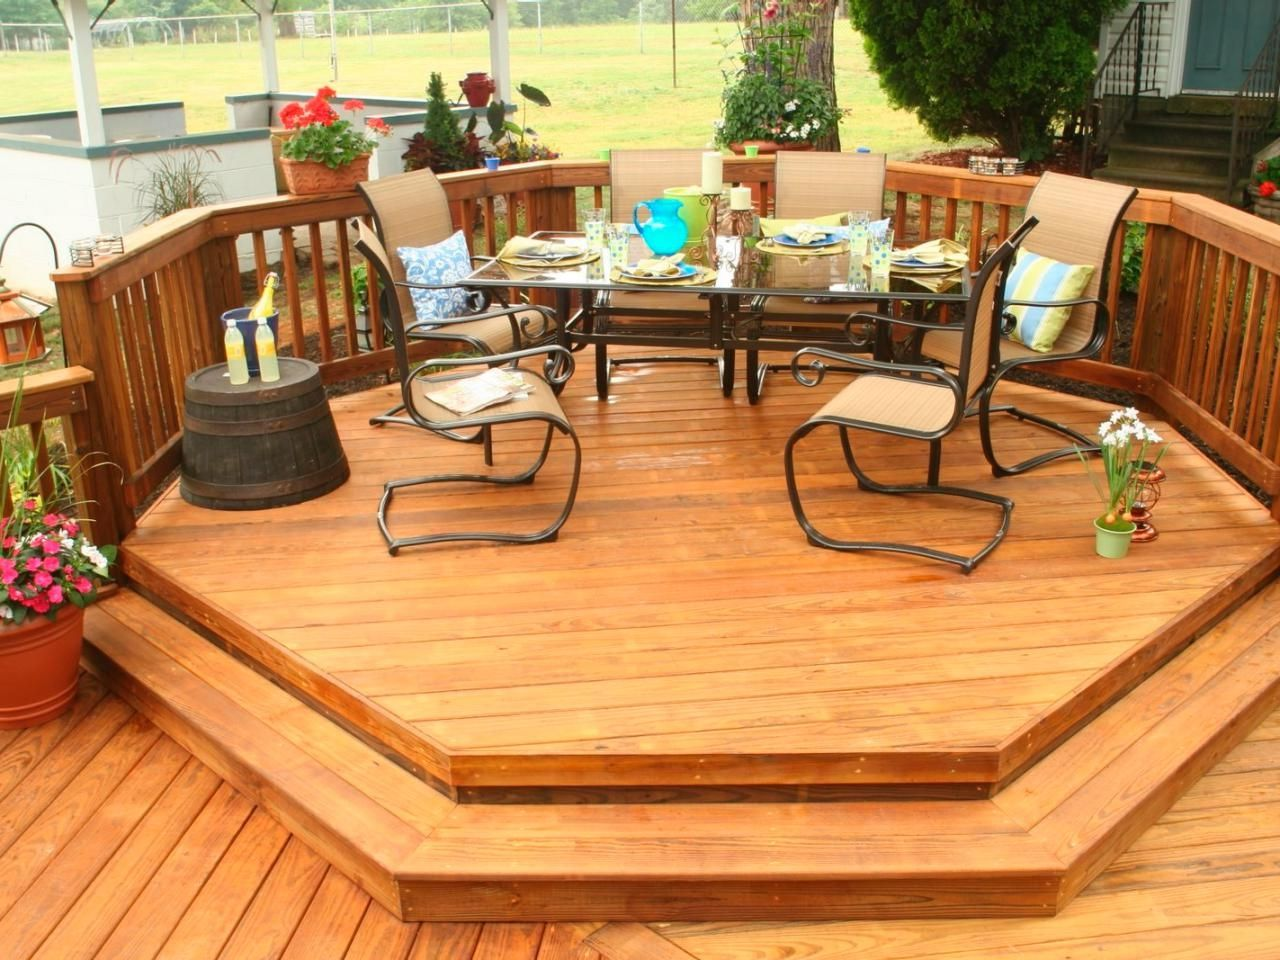 Backyard Deck Ideas Best Deck Designs For Comfy And ...